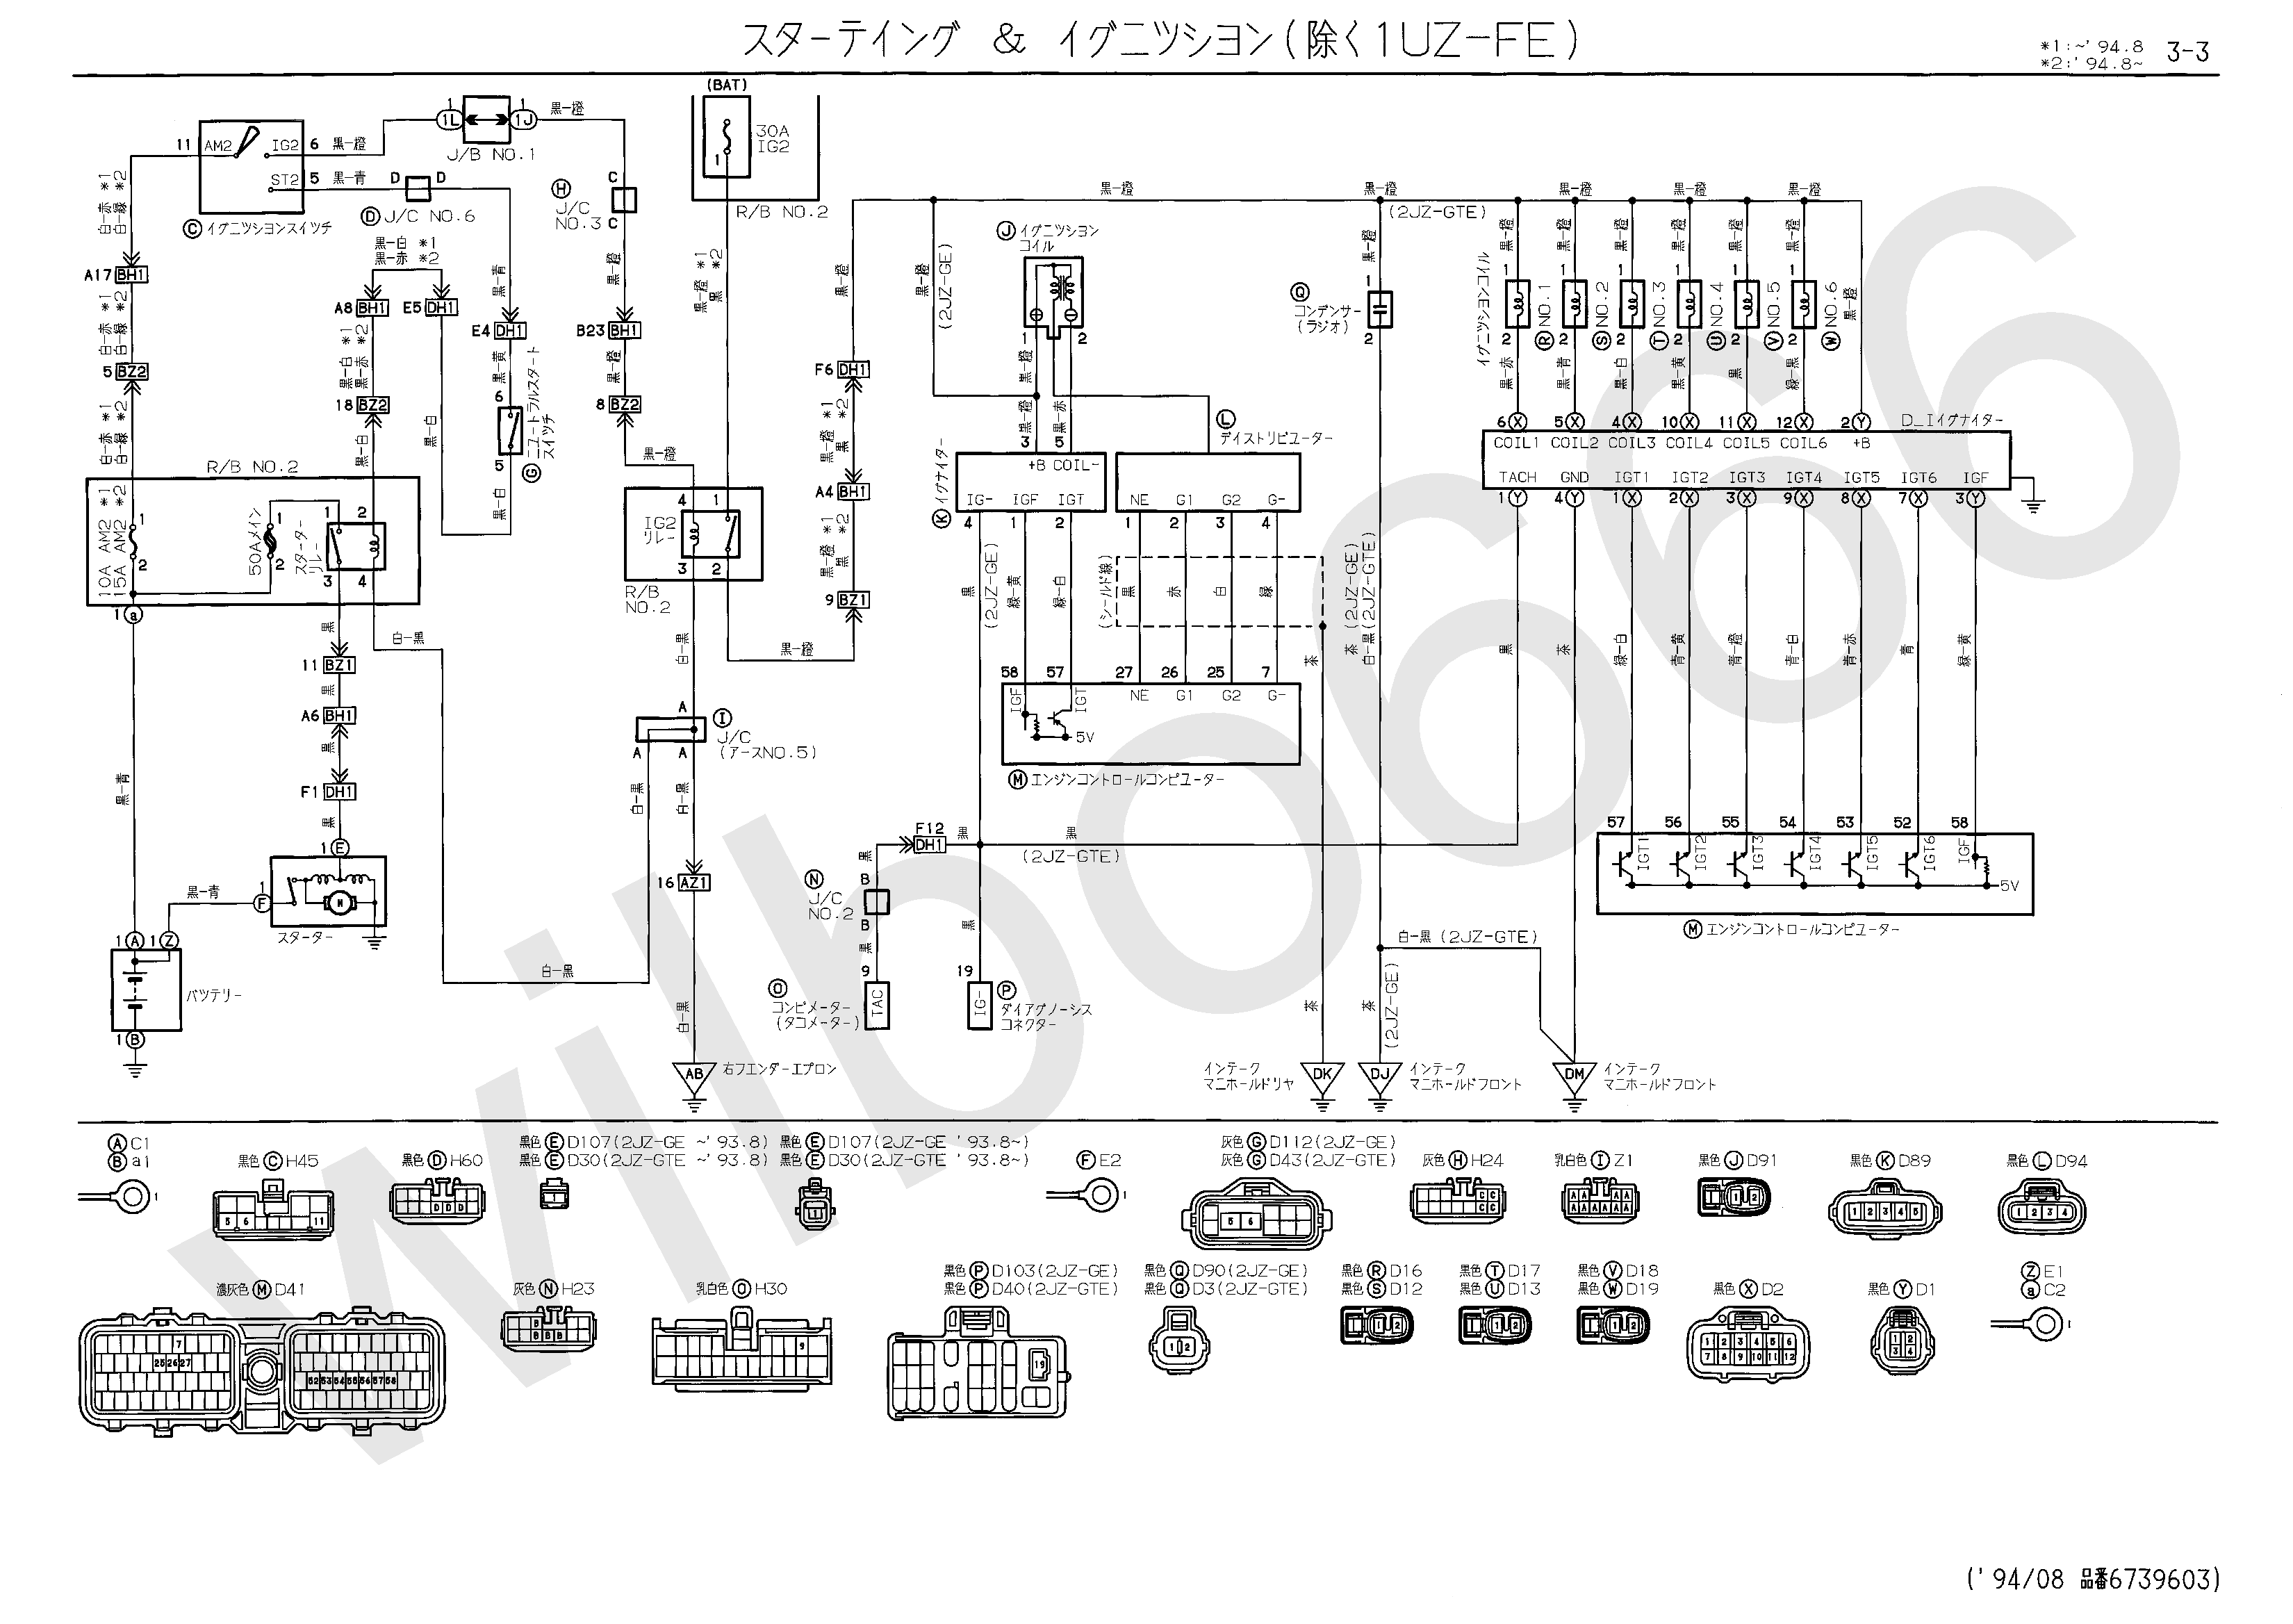 J1939 Wiring Schematic Diagram Master Blogs Data Link Electron Tcm 600 31 Images 1939 Diagnostics Cable